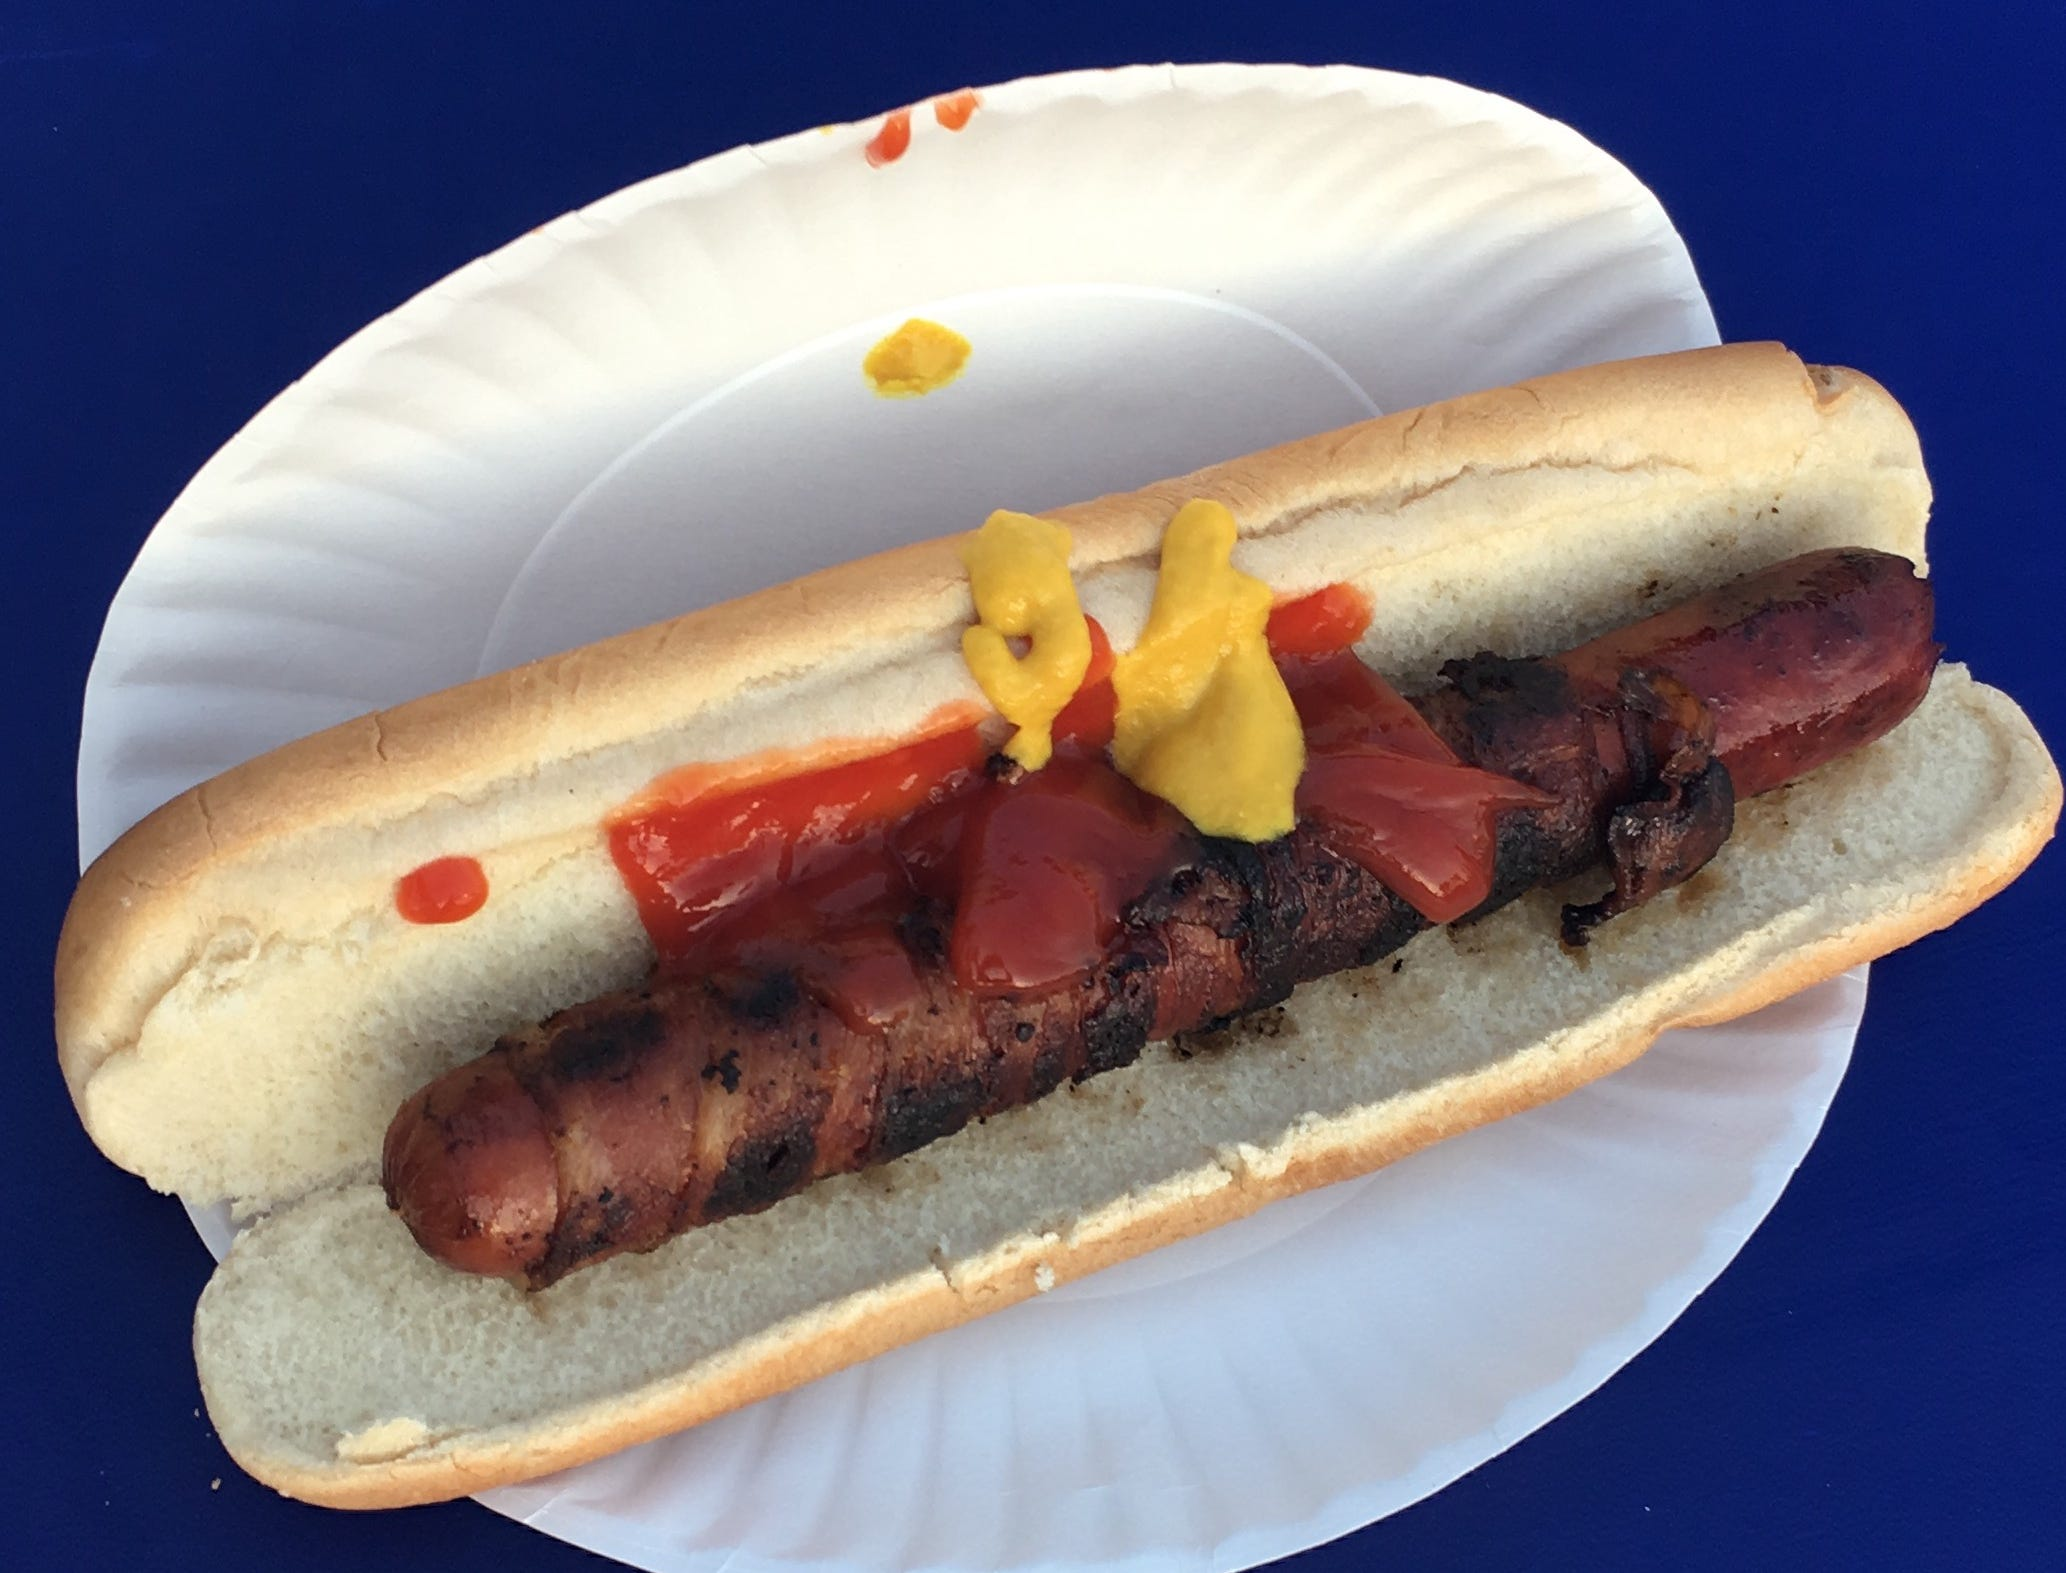 Bacon-wrapped kosher hot dog on a white bun, topped with ketchup and mustard.